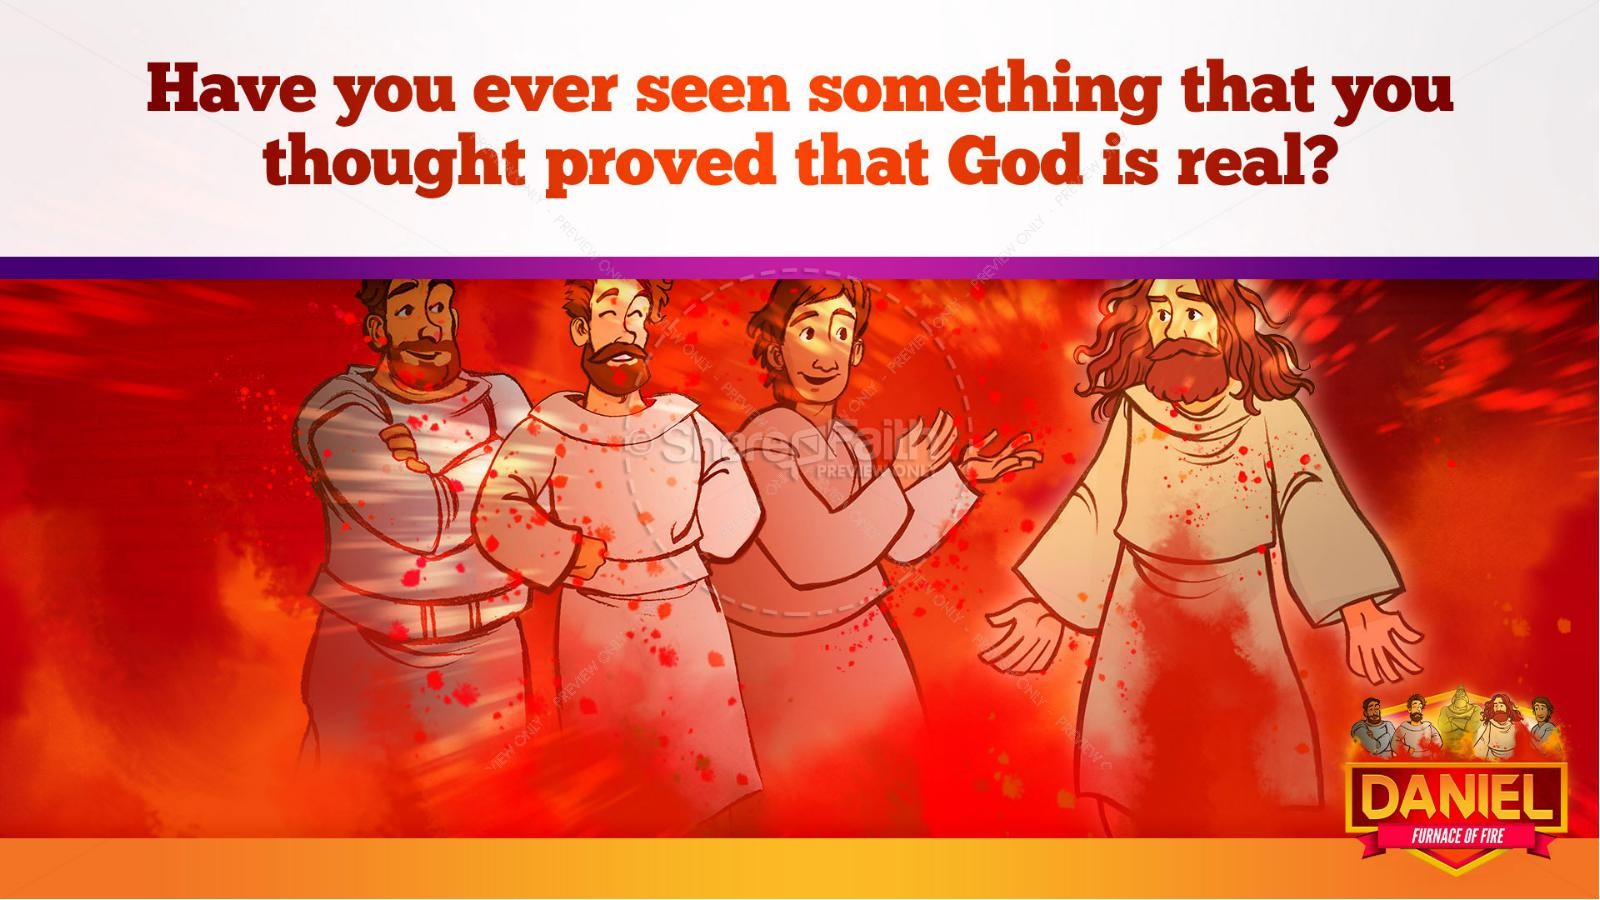 Daniel 3 The Furnace of Fire Kids Bible Story | slide 33